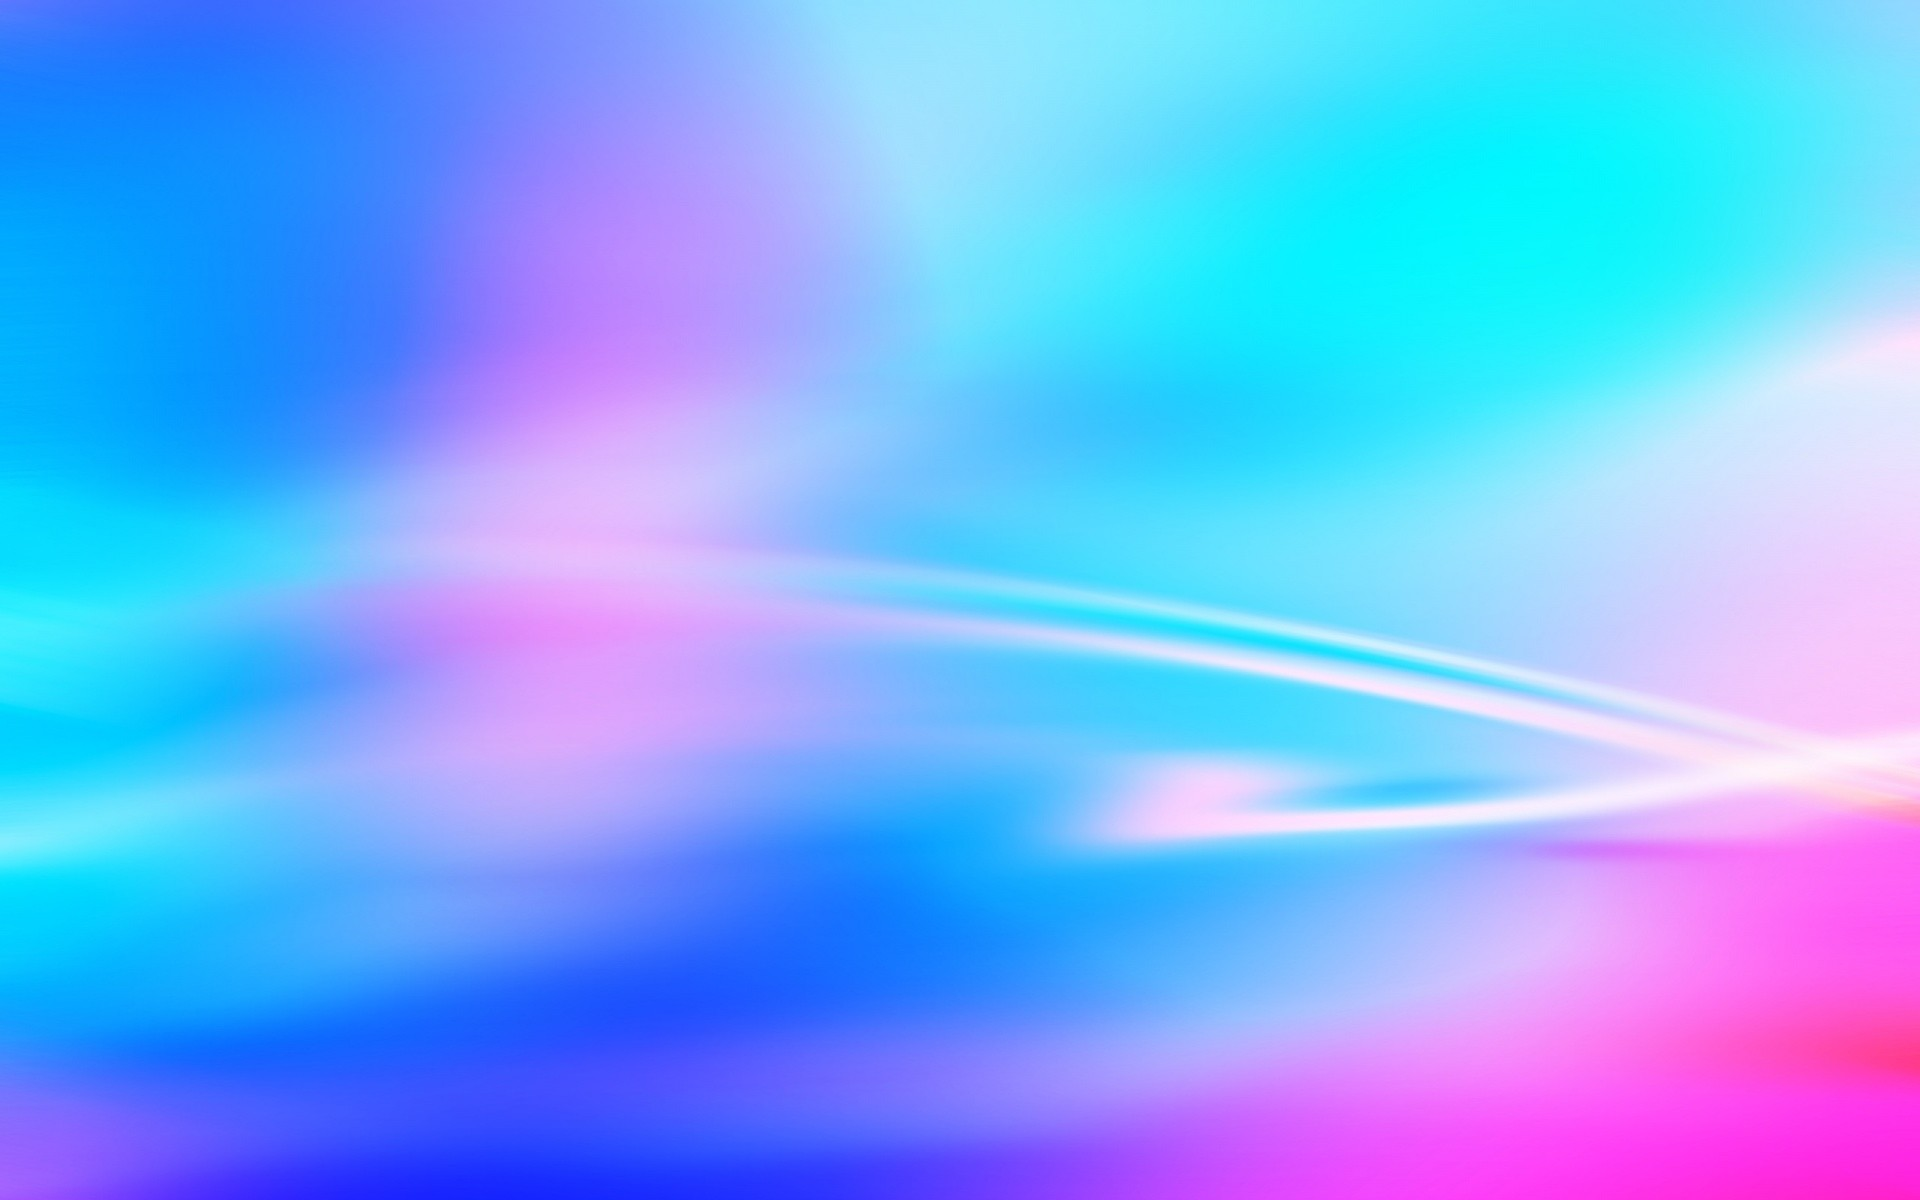 Blue And Pink Wallpaper HD Free Download.